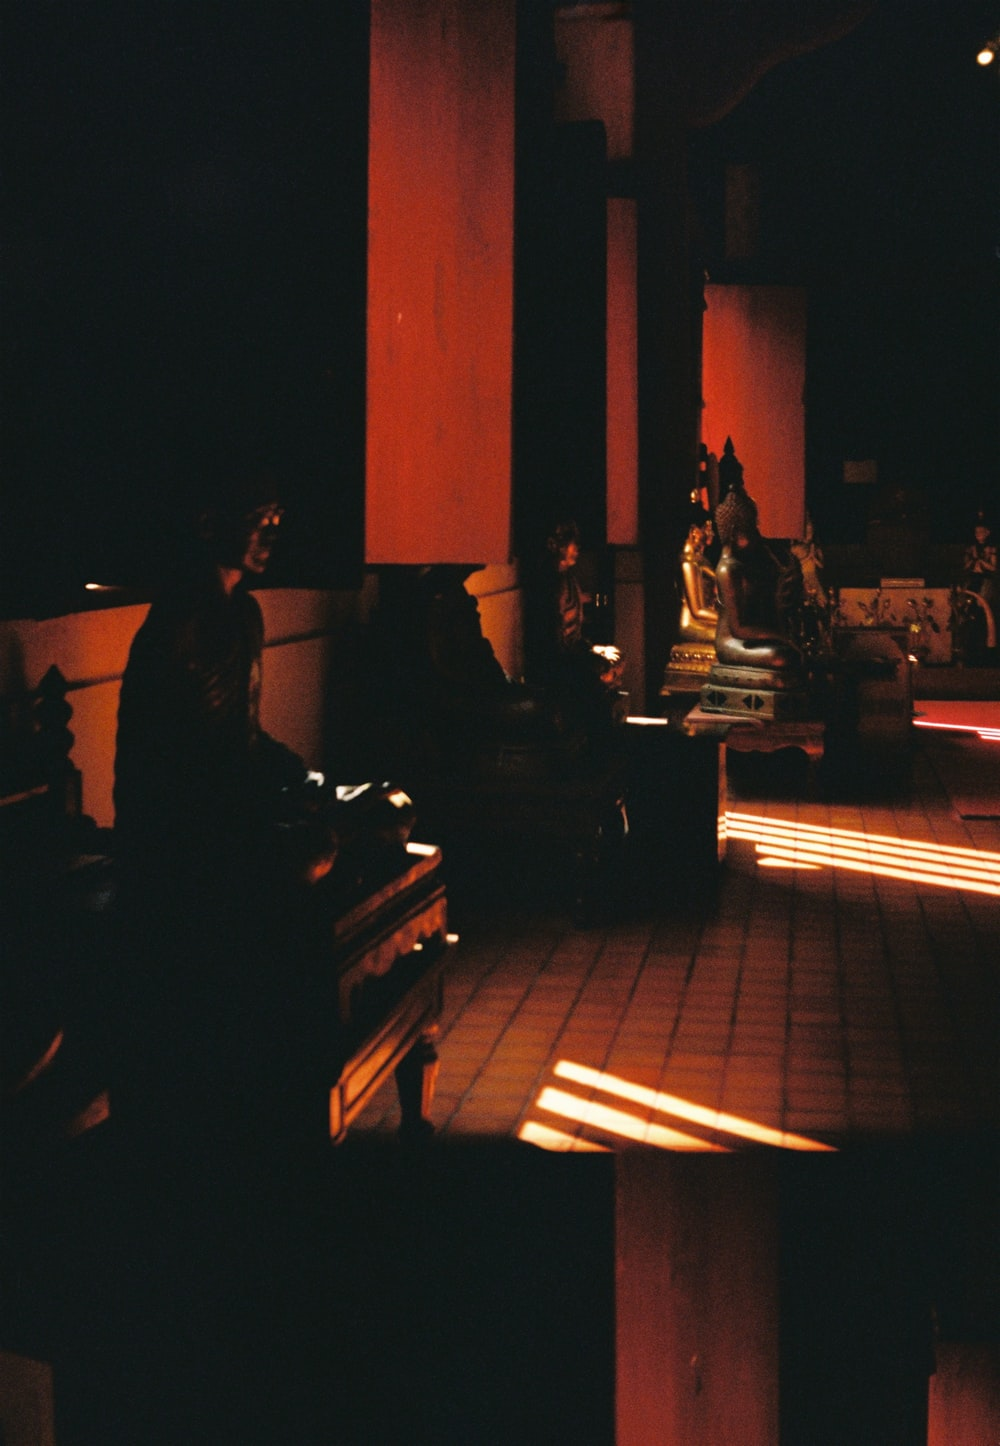 people sitting on bench during night time